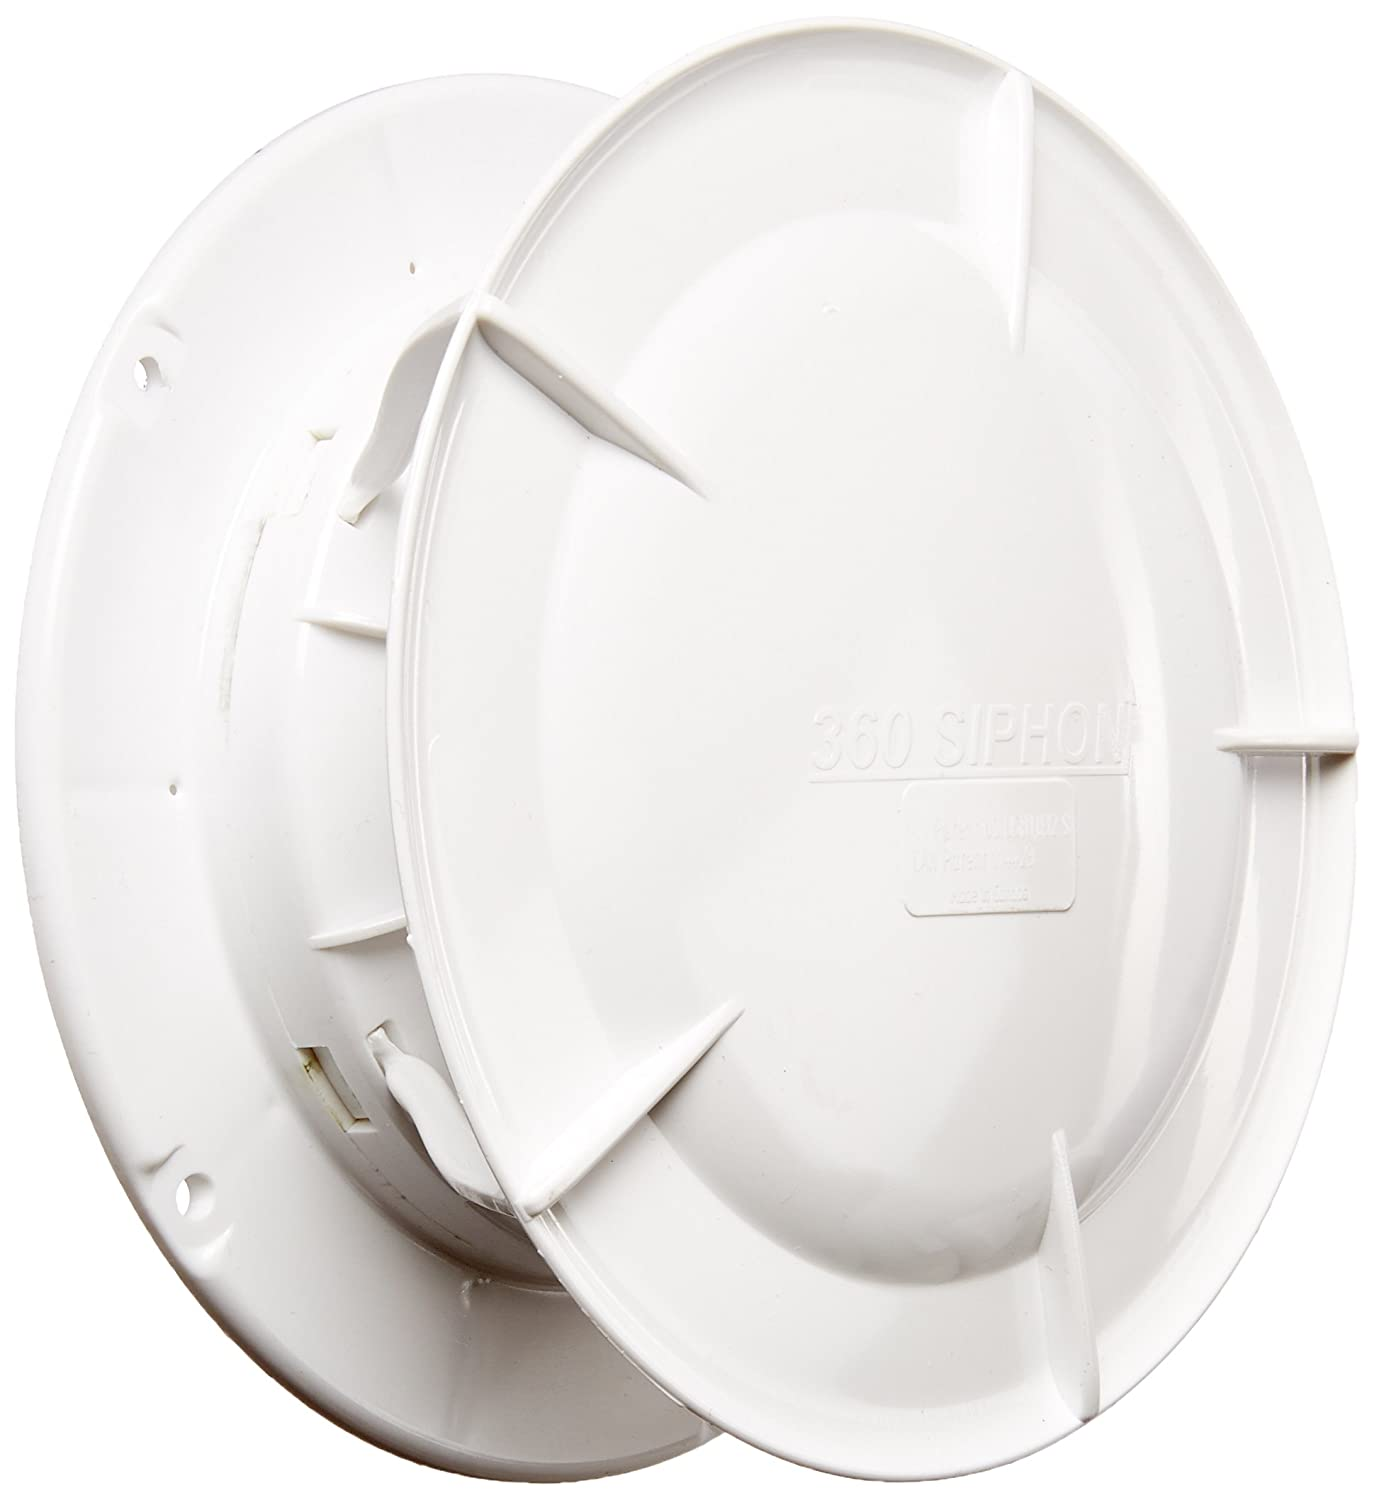 Amazon.com: 360 Siphon White Roof Vent We love our holding tank roof vent. It fits nicely under a solar panel (allowing more solar!) and does an excellent job venting. No smells while in motion!